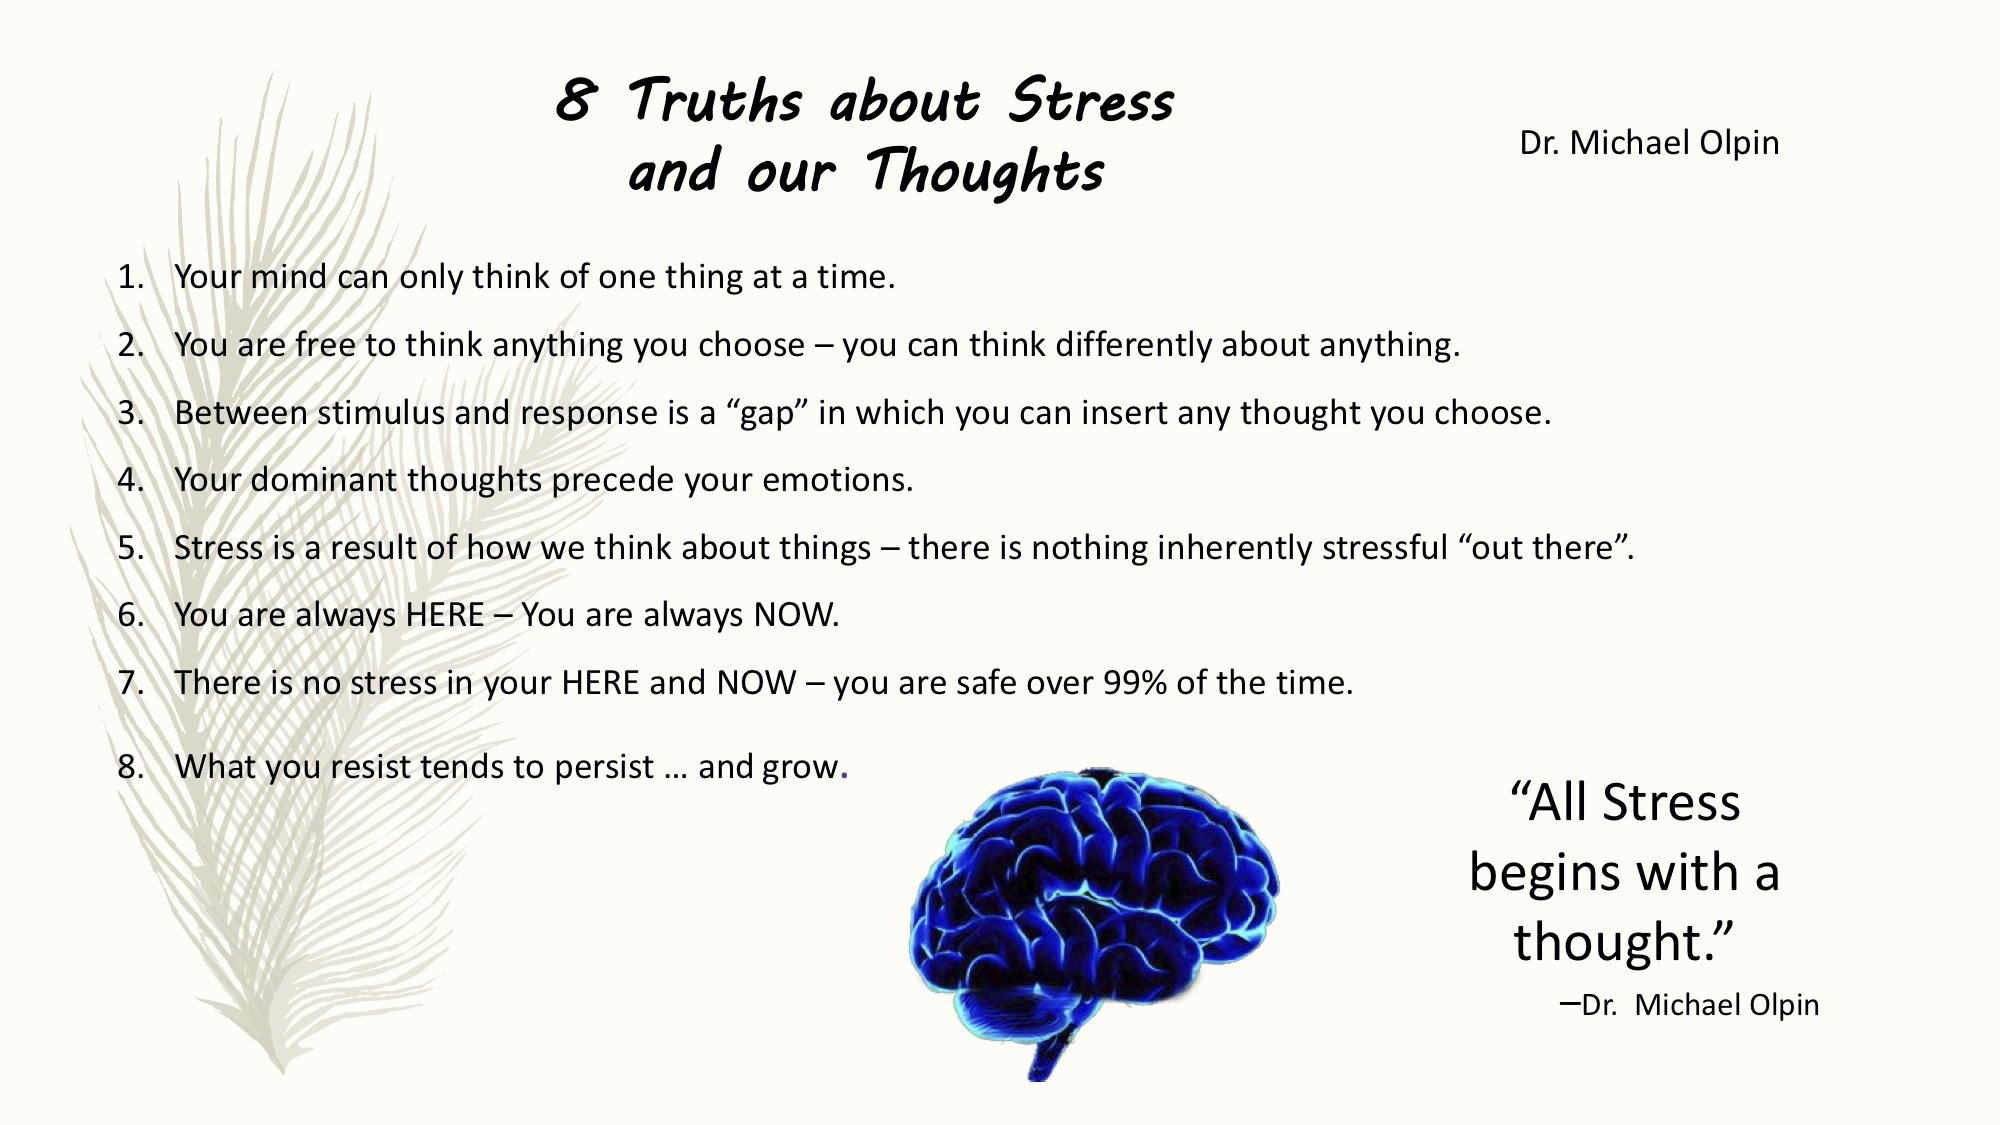 Eight truths about stress